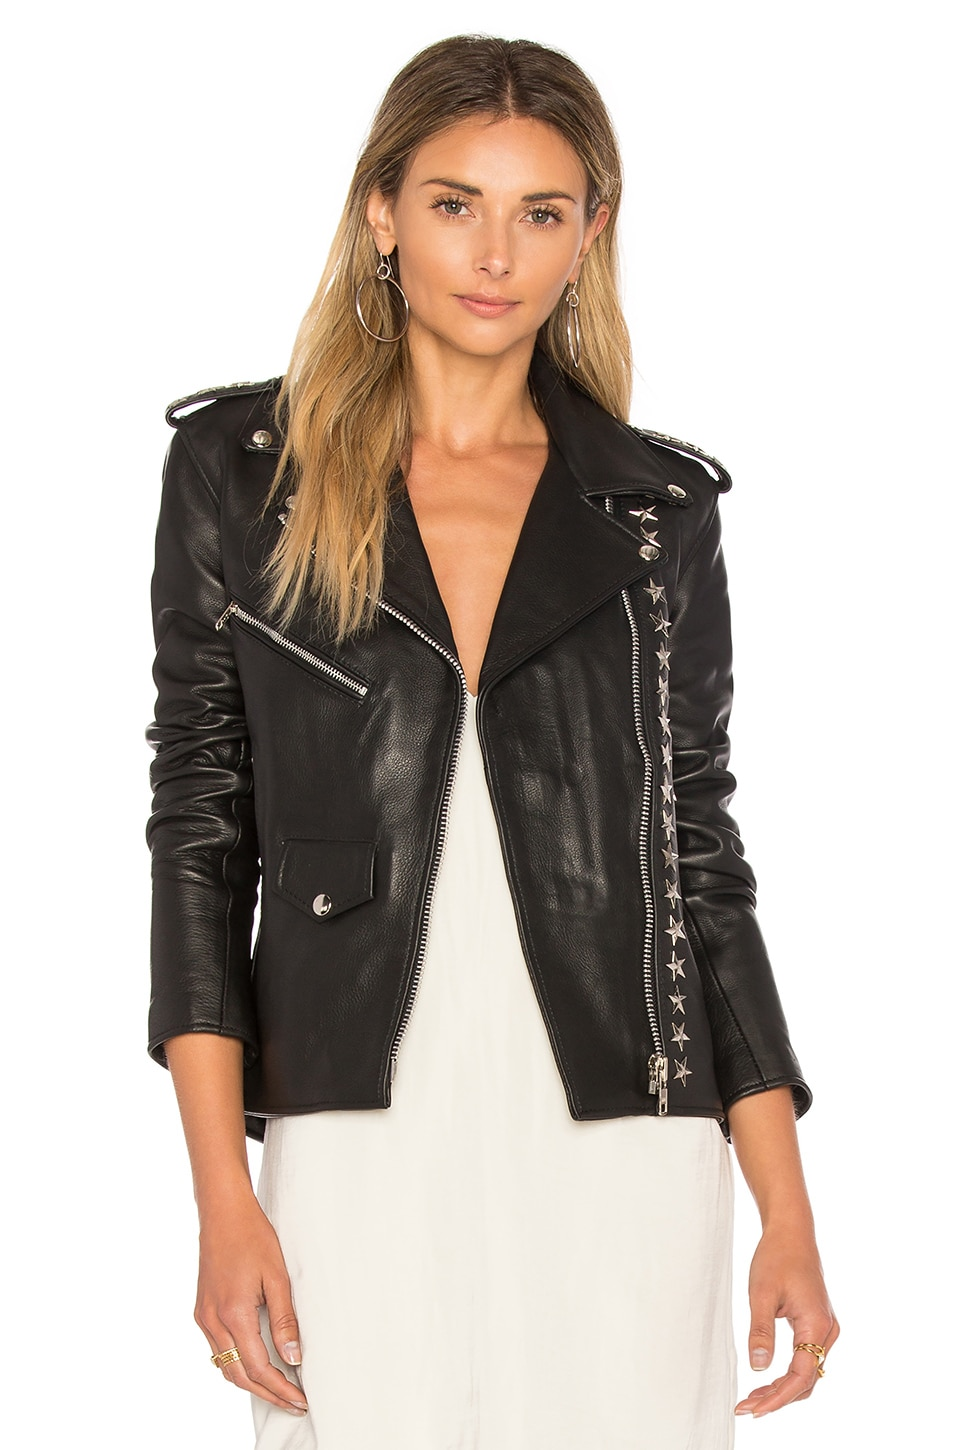 North Star Jacket by Understated Leather